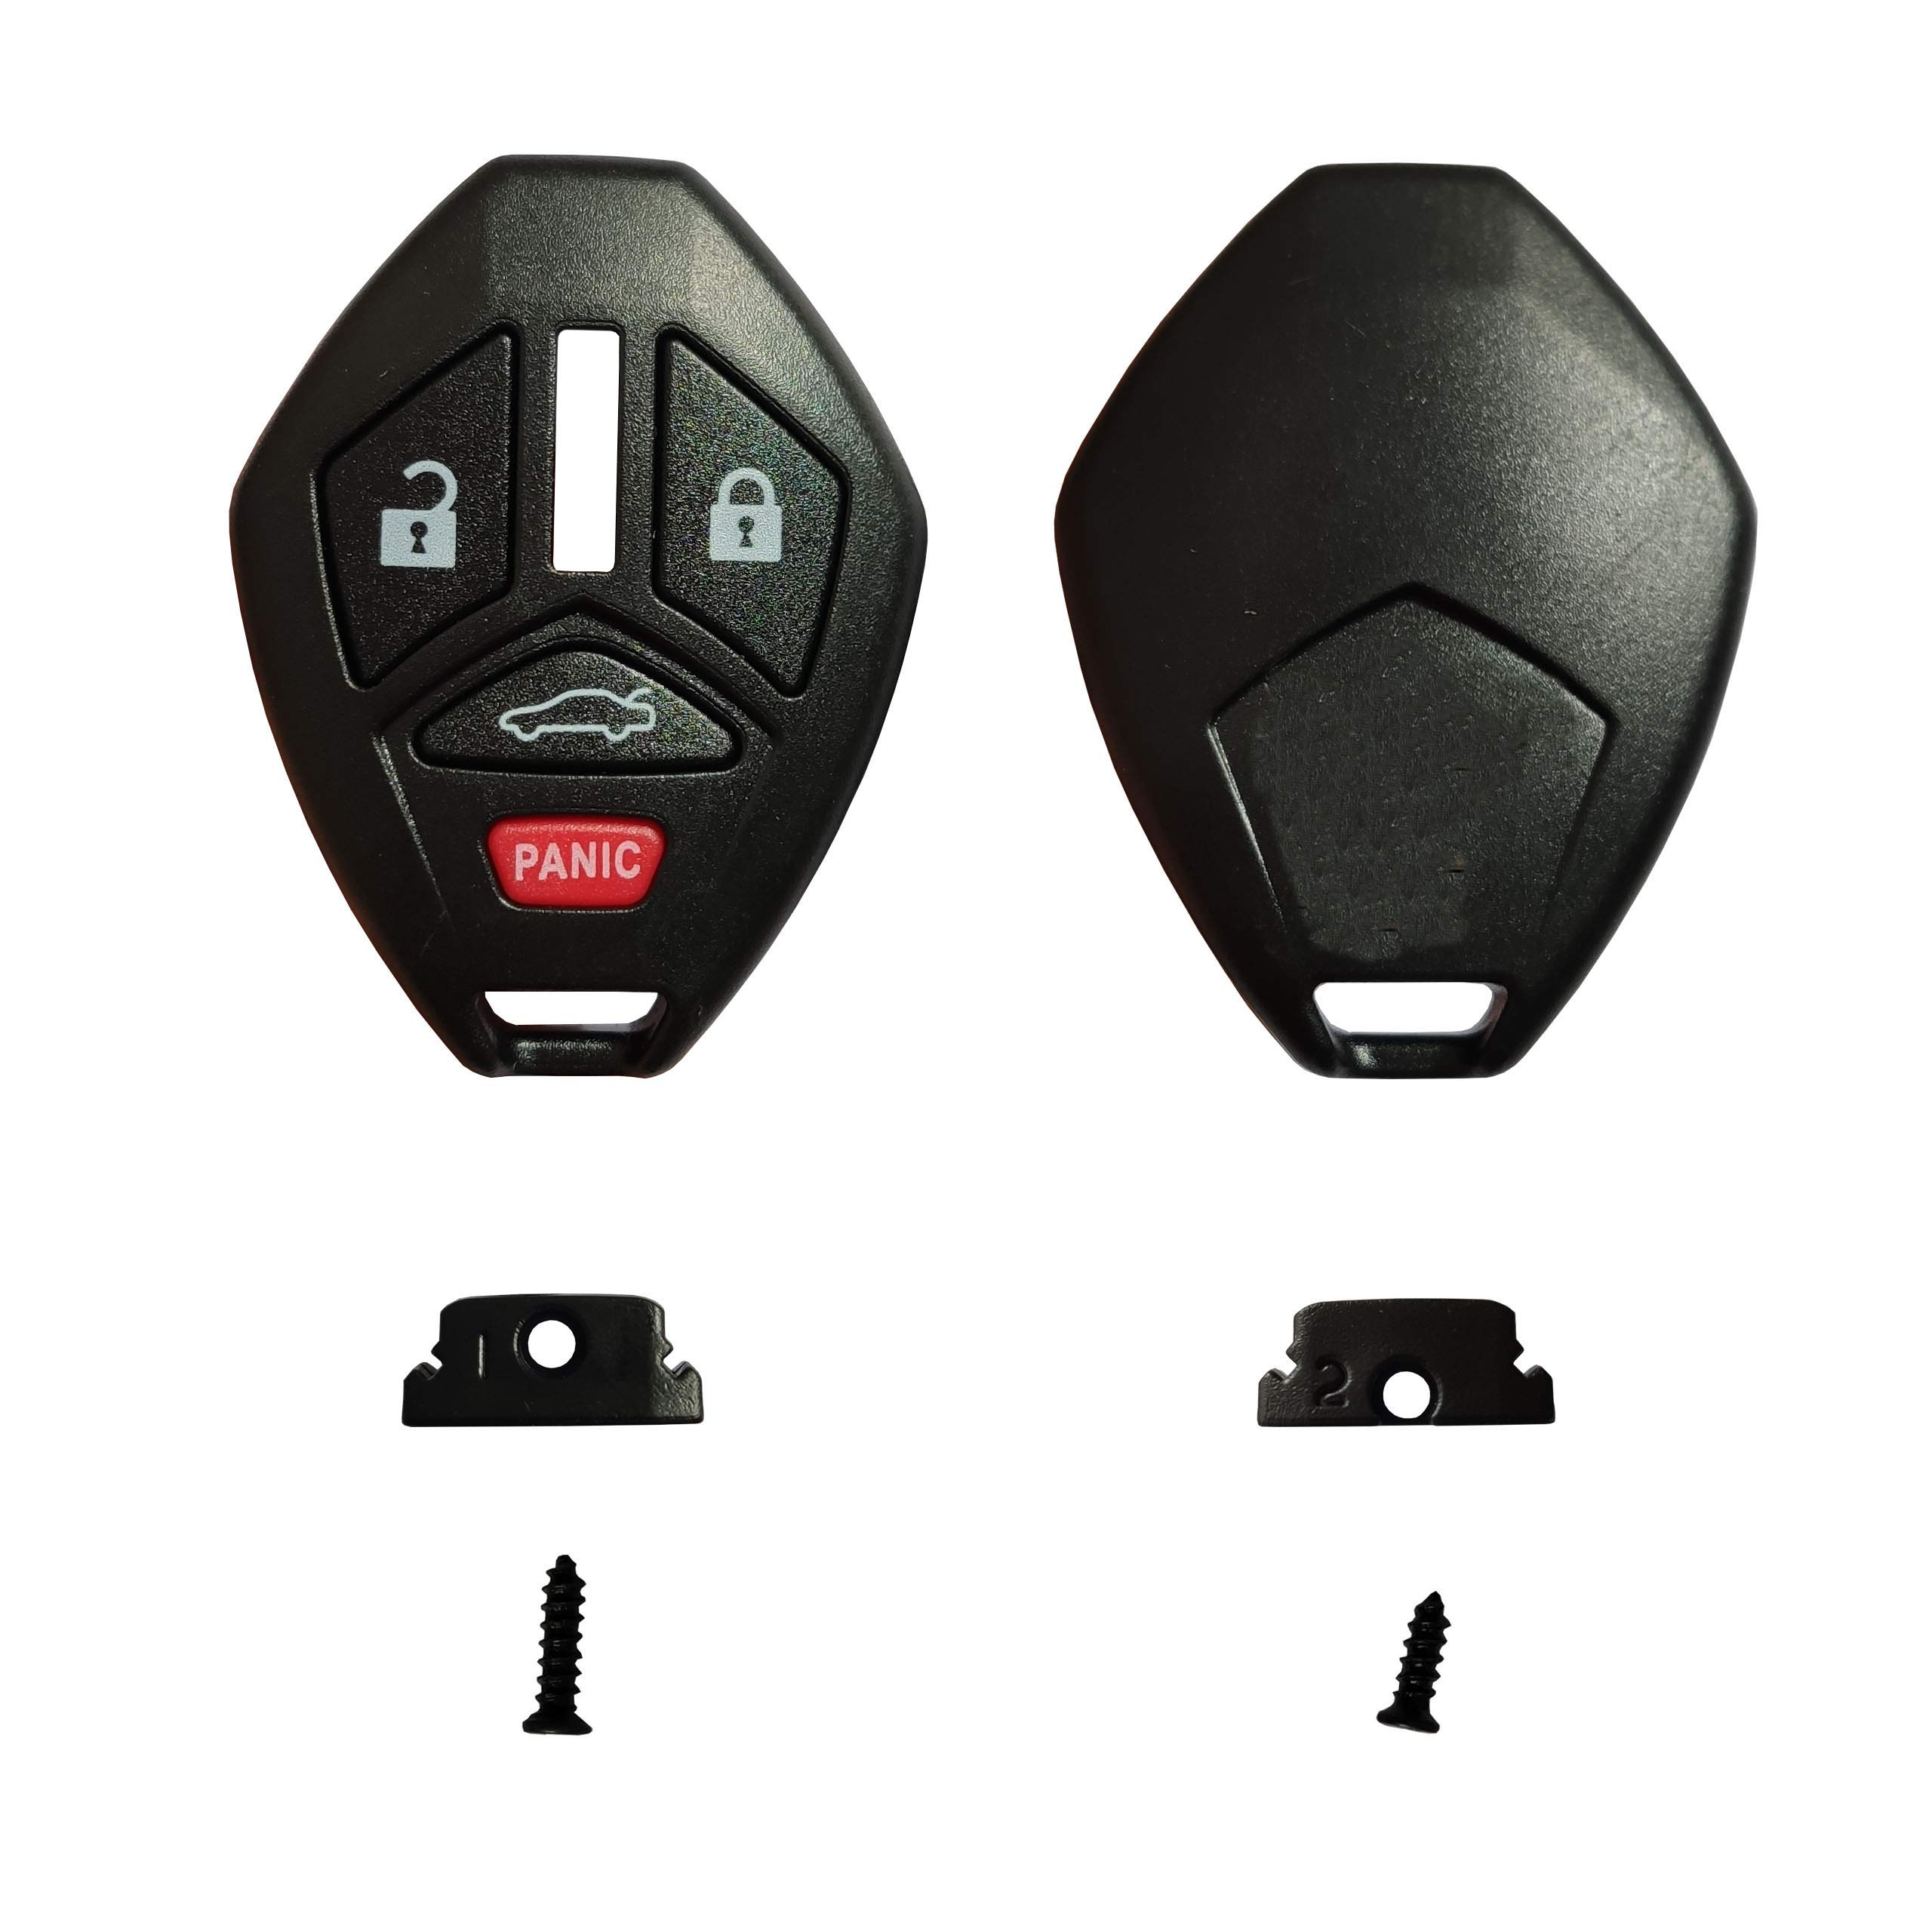 KeylessOption Keyless Entry Remote Uncut Car Key Fob Replacement for Mitsubishi OUCG8D620MA